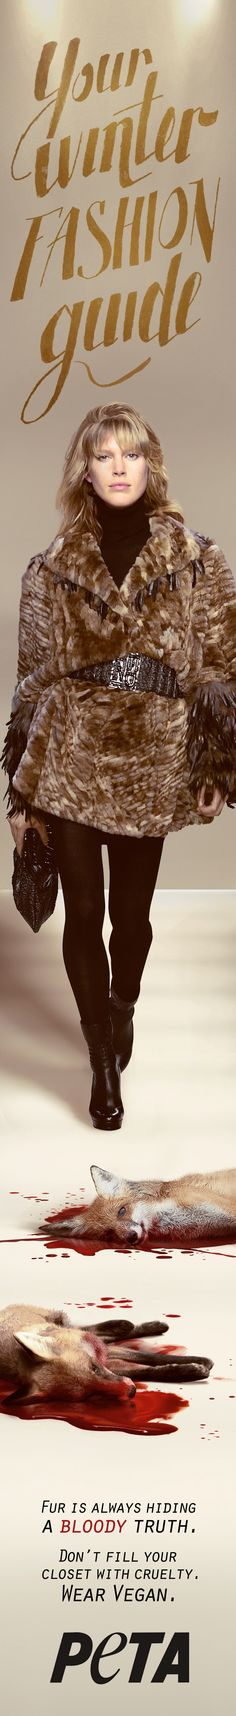 Stay warm and fashionable this winter with a luxurious second skin of fur. Complete the 'second skin' look with leather accents and an oversized snake skin belt with a sterling silver buckle. #NYFW #NewYorkFashionWeek #Fashion #FashionWeek #Trend #Winter #Fur #FurCoat fervent-adepte-de-la-mode via Visual Hunt / CC BY 2.0 (https://www.flickr.com/photos/51528537@N08/8528544772/)